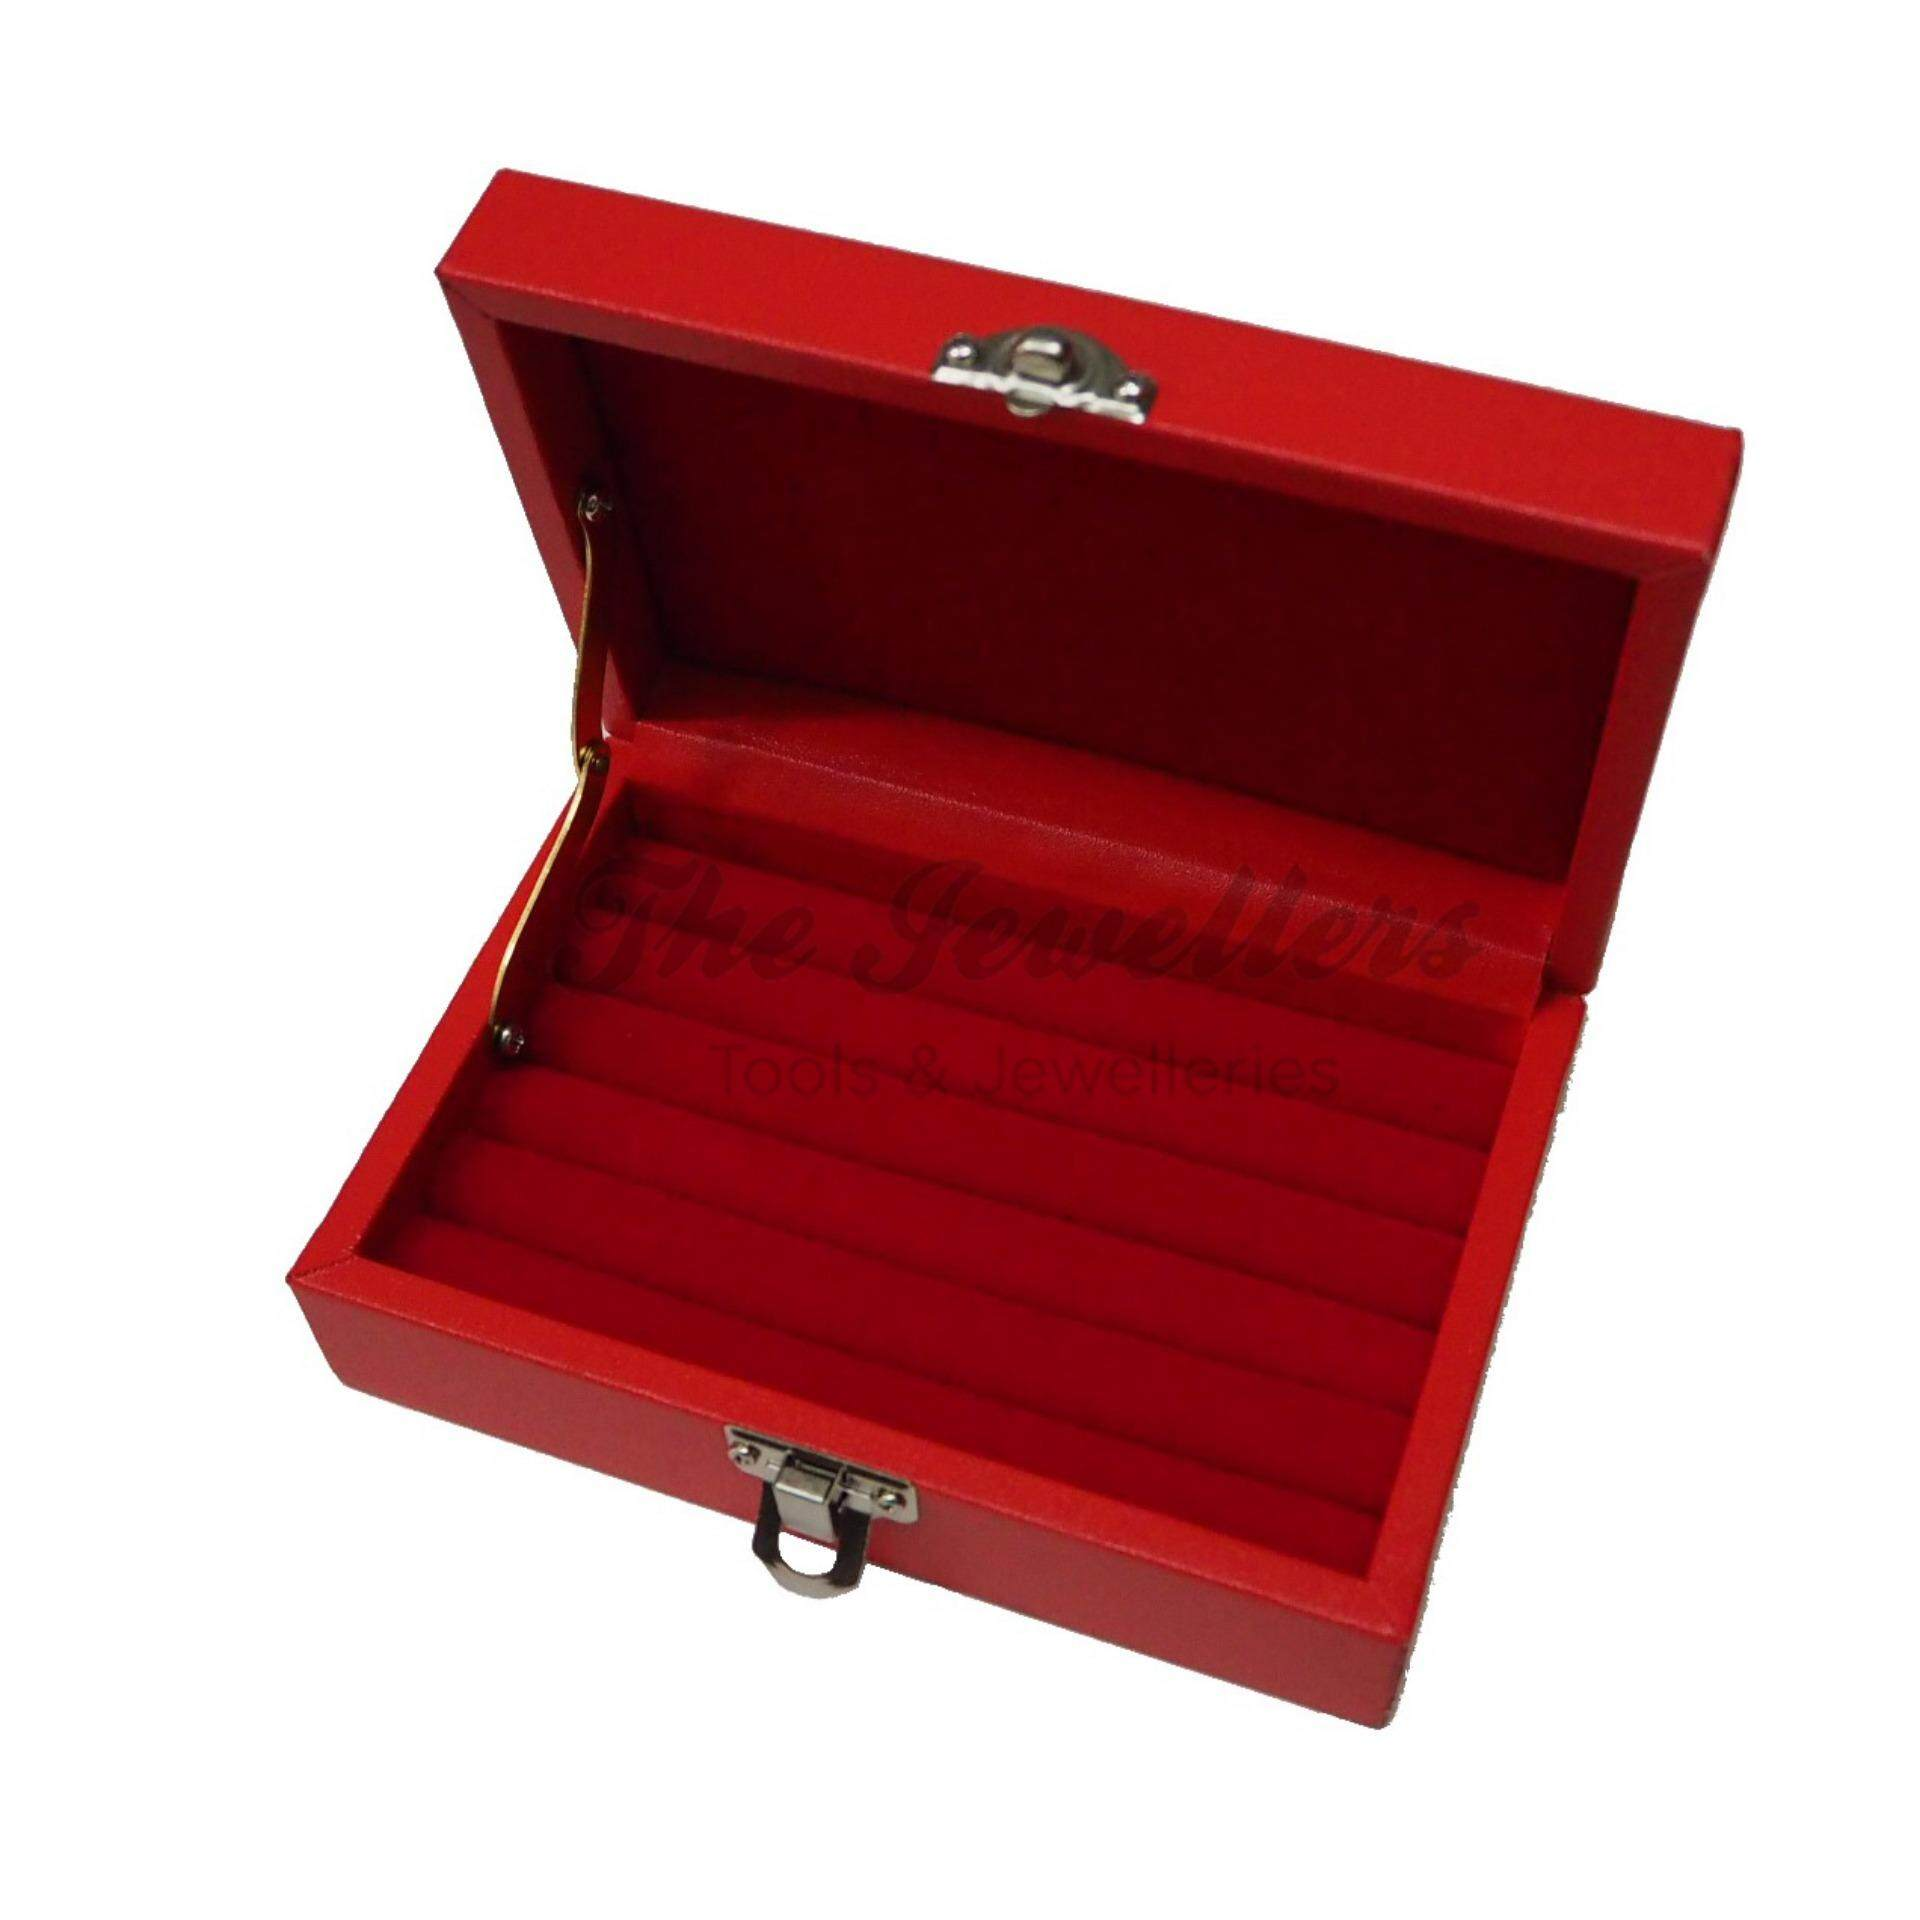 Red Leatherette Ring Box 15 x 10cm